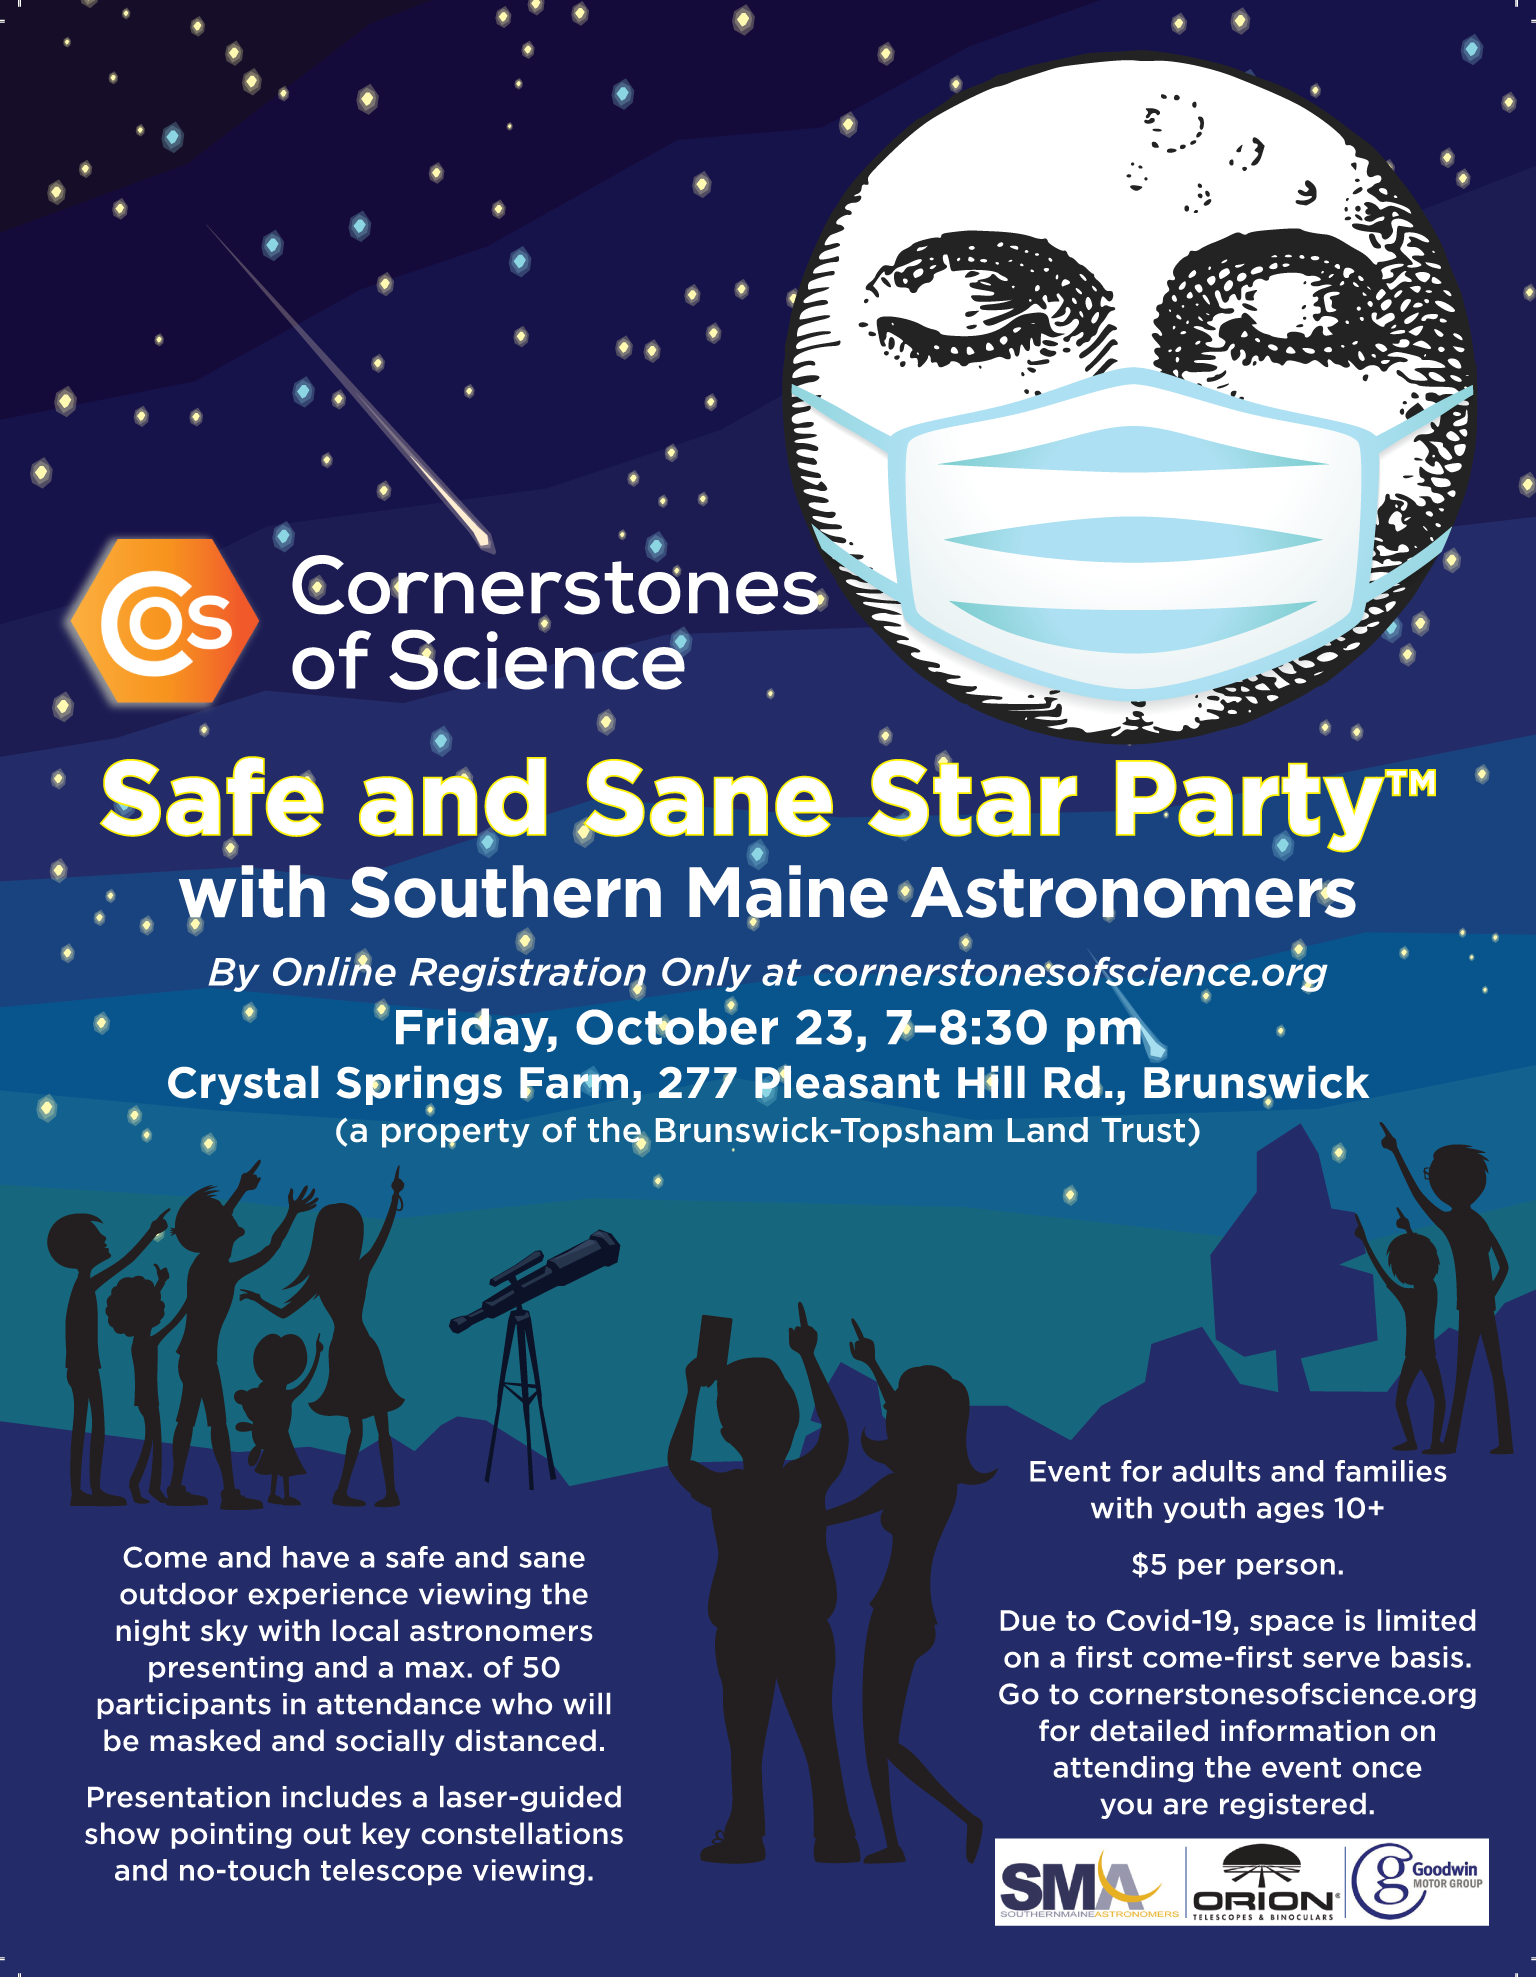 Safe and Sane Star Party flyer